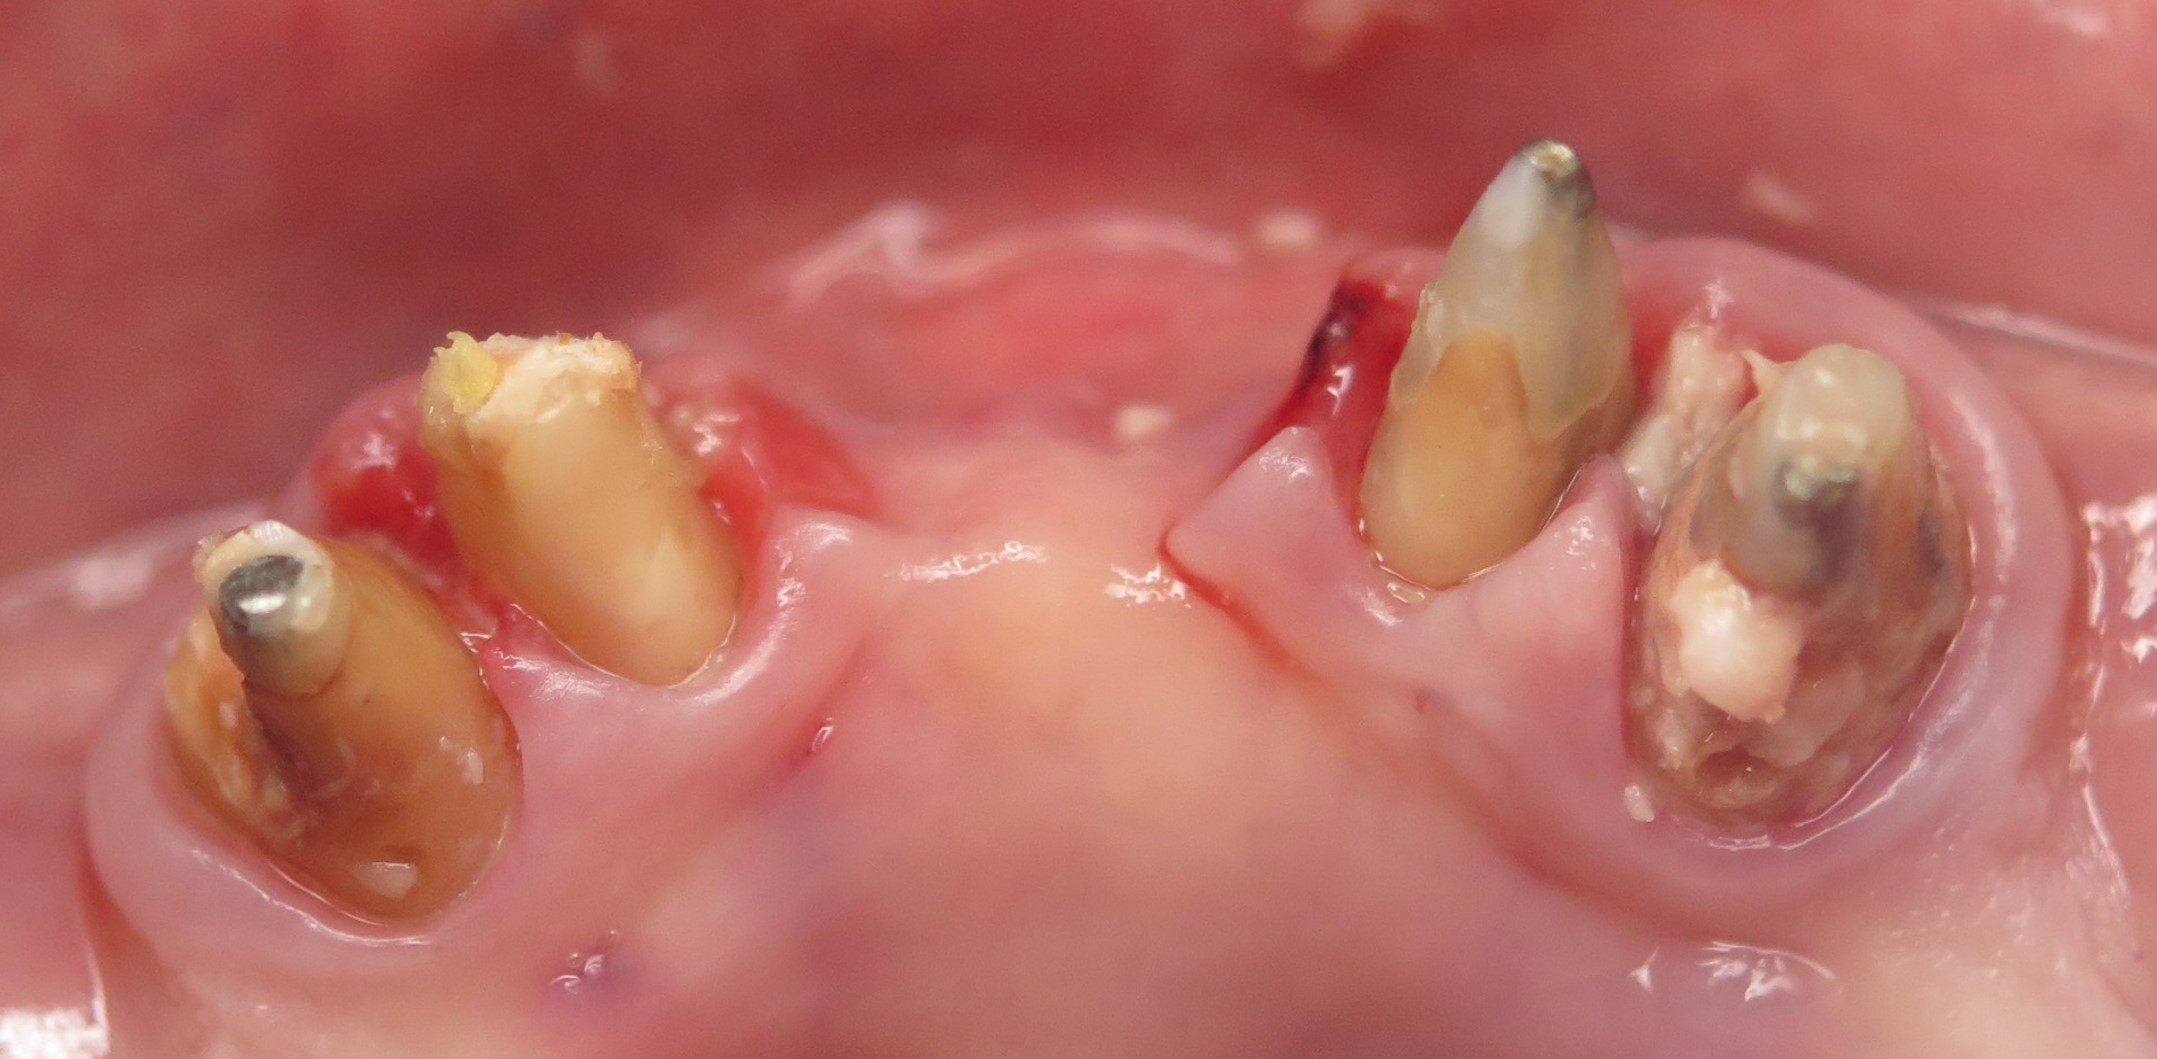 hard tissue grafting socket or ridge preservation